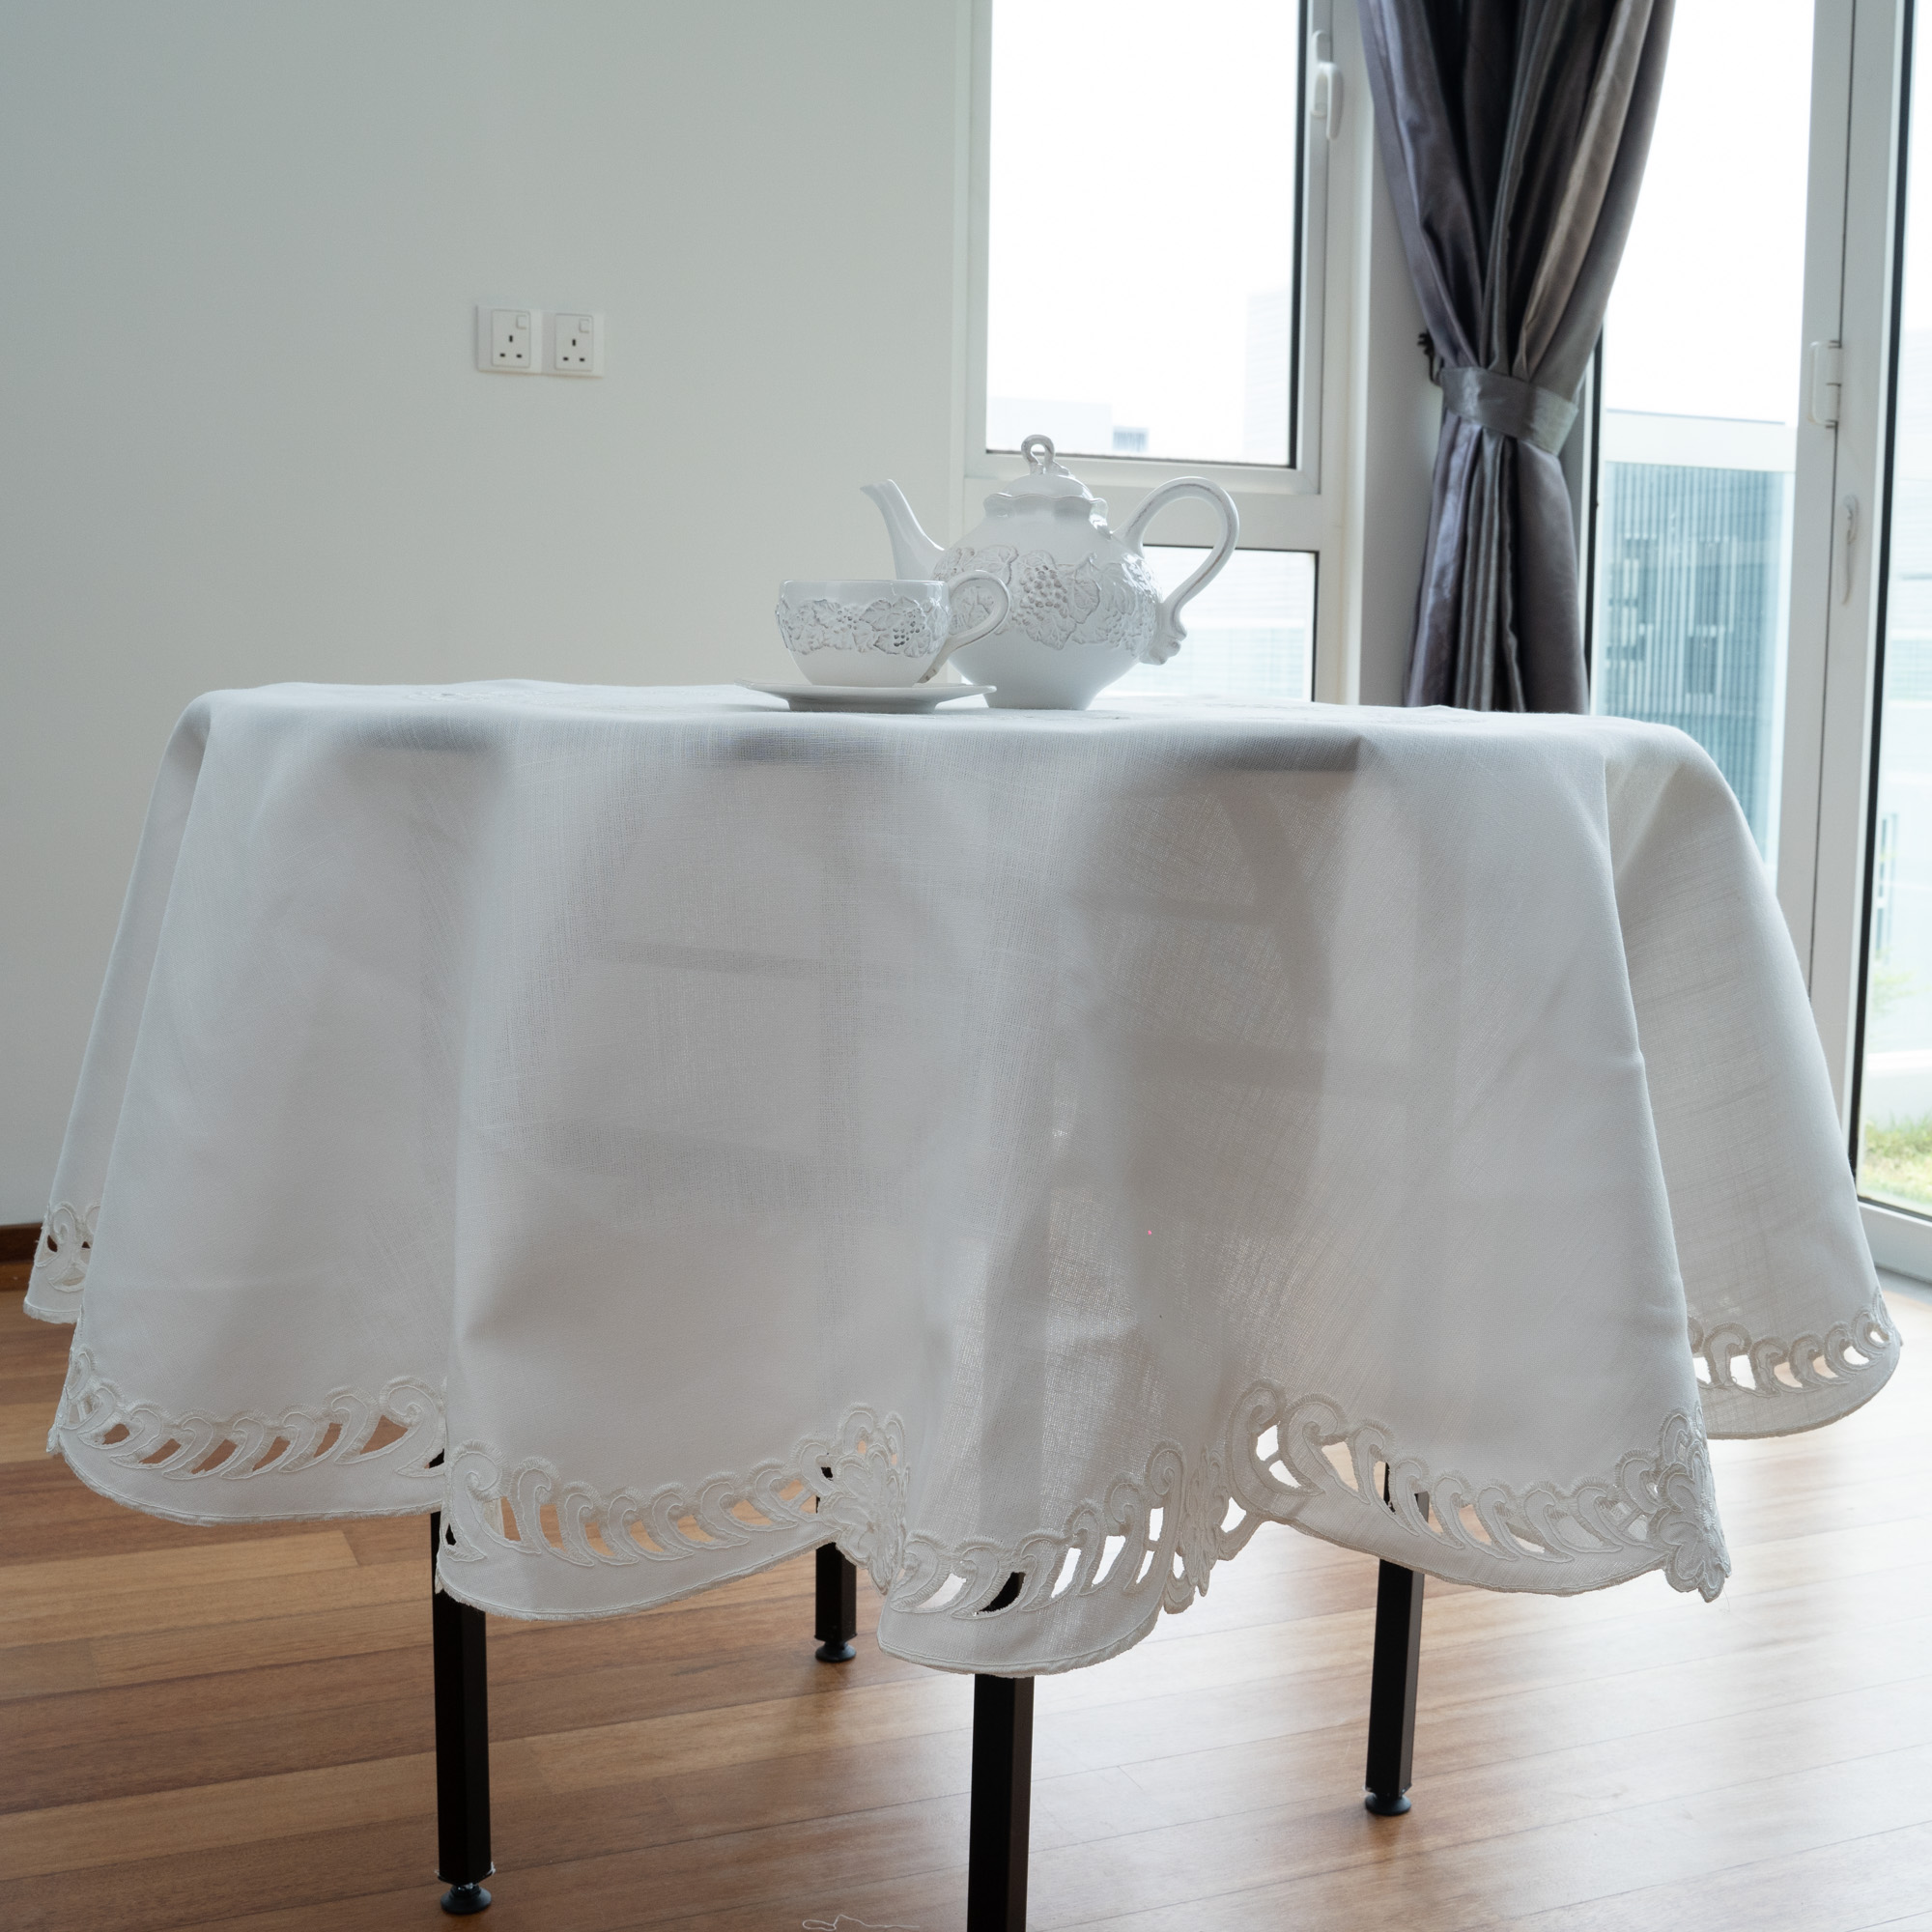 Y2 Classic White Floral Cutwork Embroidery Round Tablecloth. Easy Care Polycotton Fabric. Multi-Size (White)